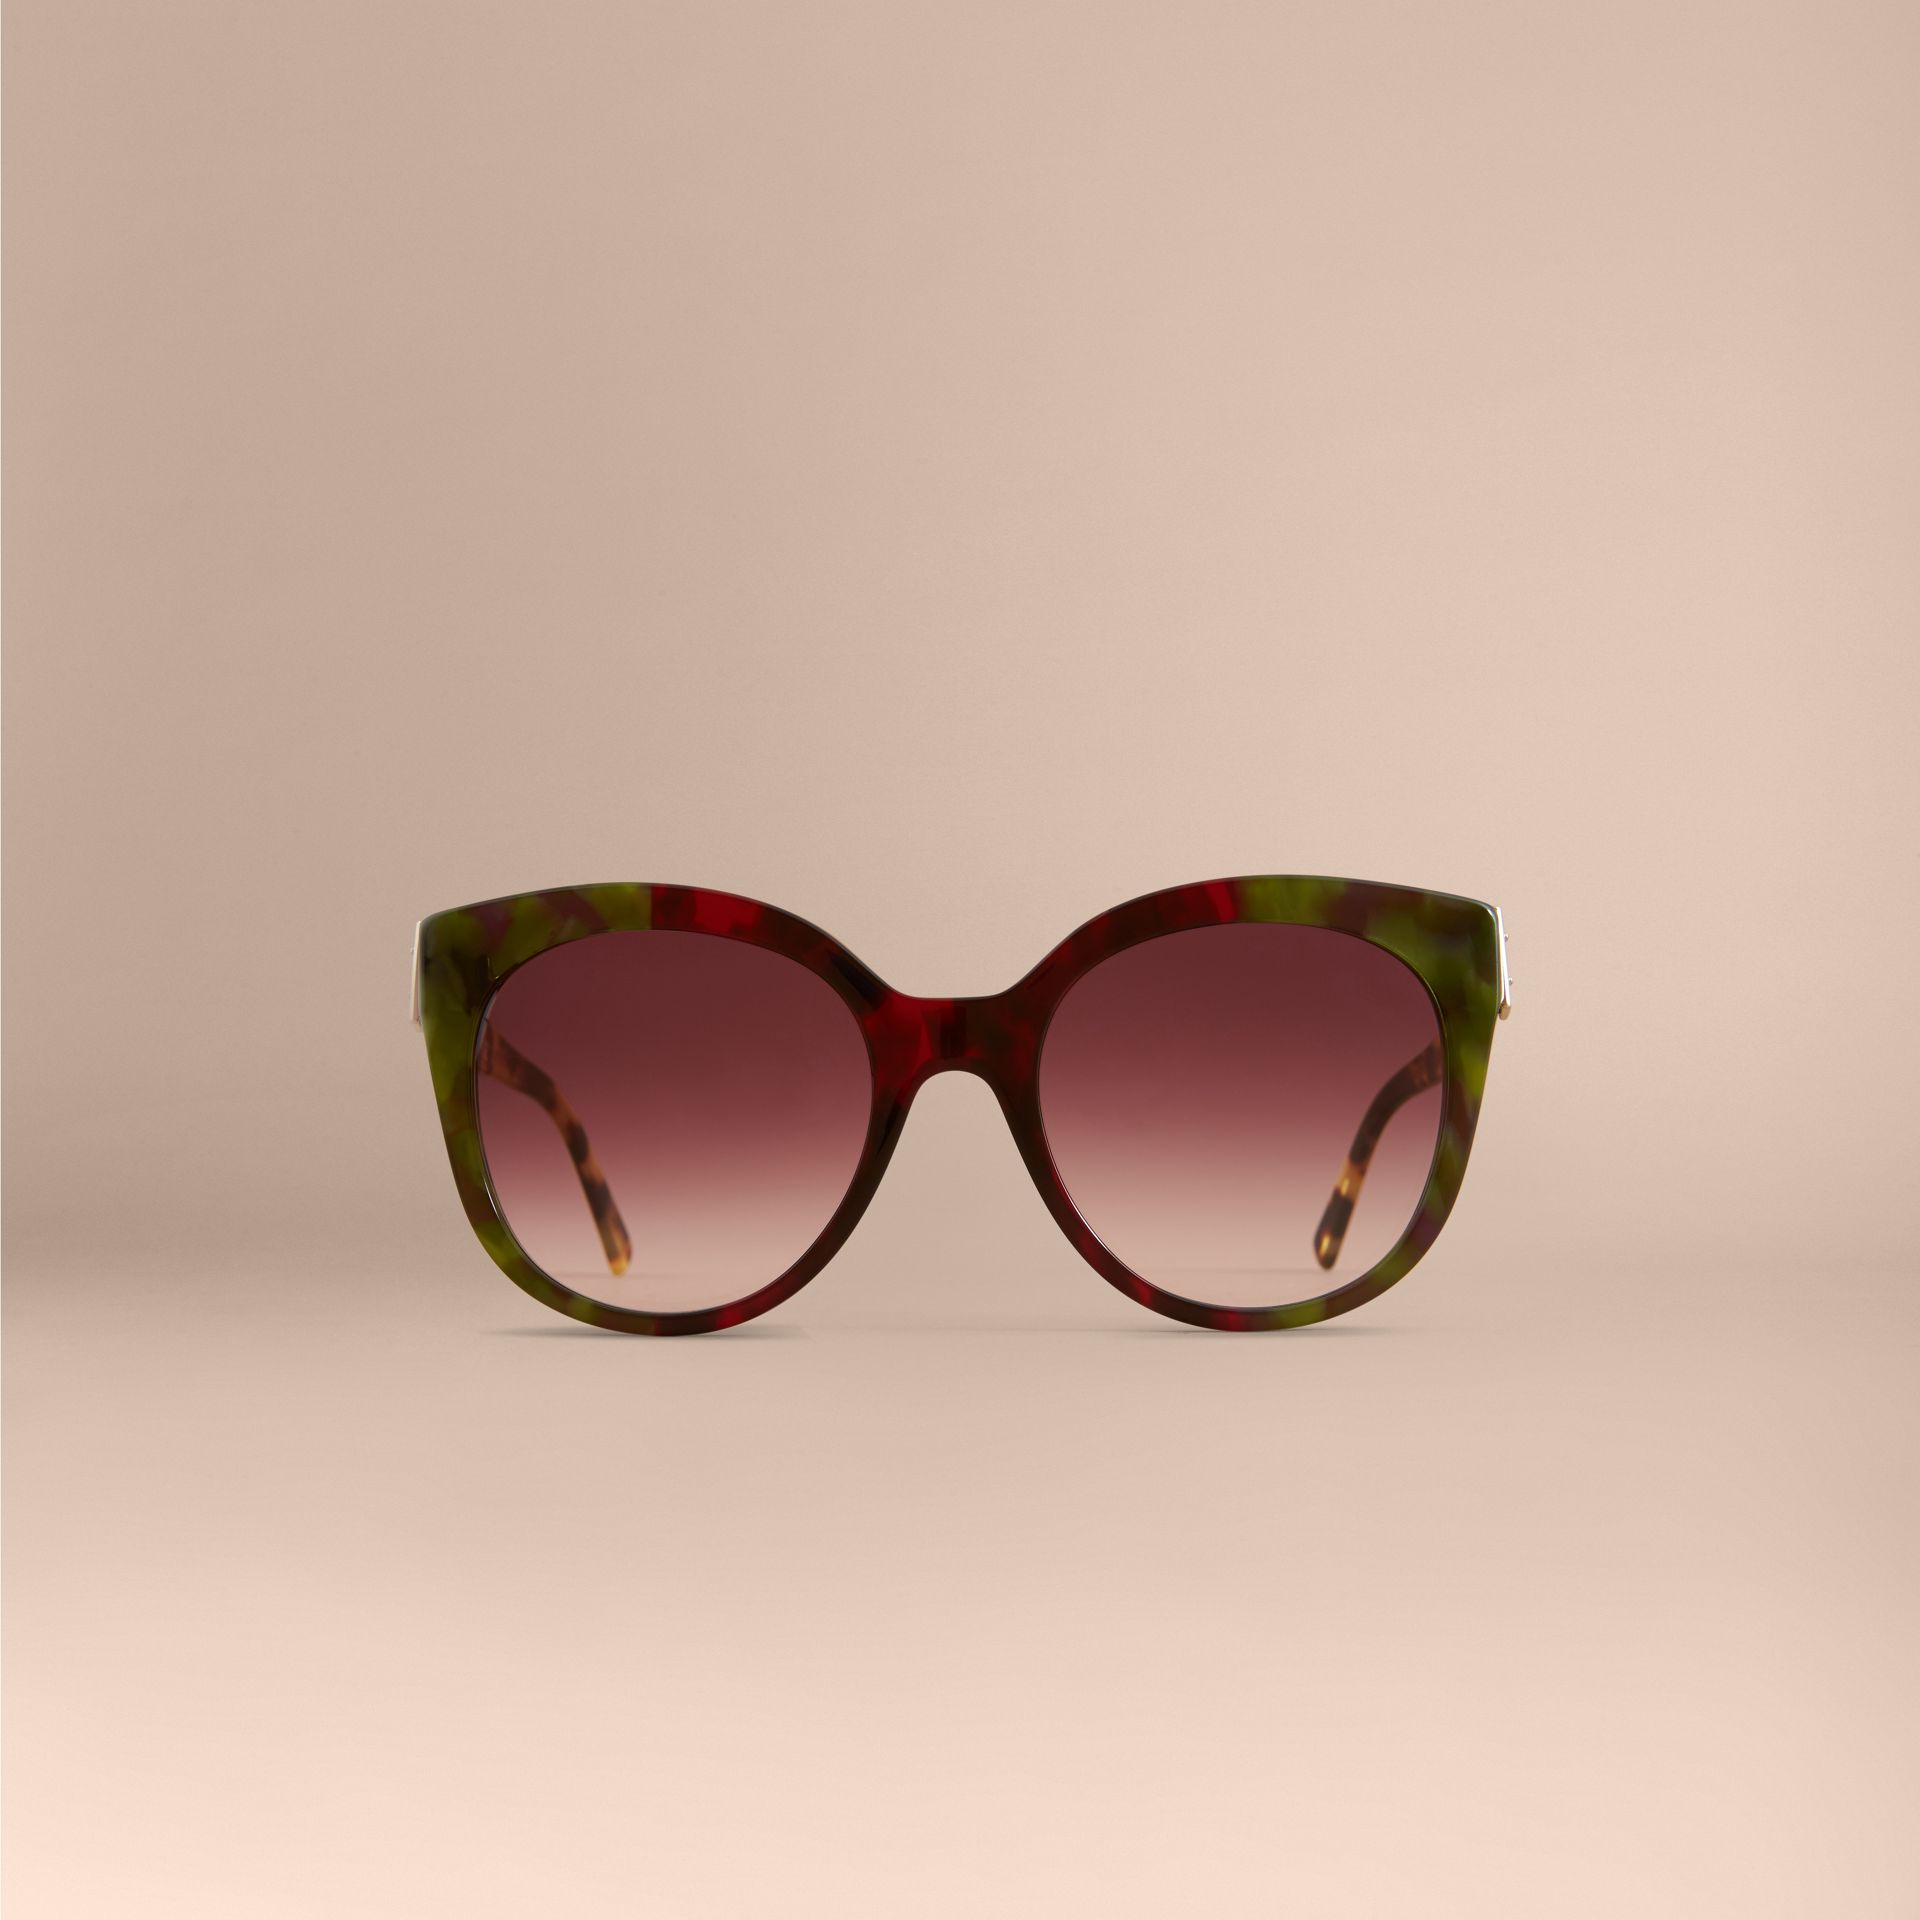 Buckle Detail Cat-eye Frame Sunglasses in Cardinal Red - Women | Burberry - gallery image 2